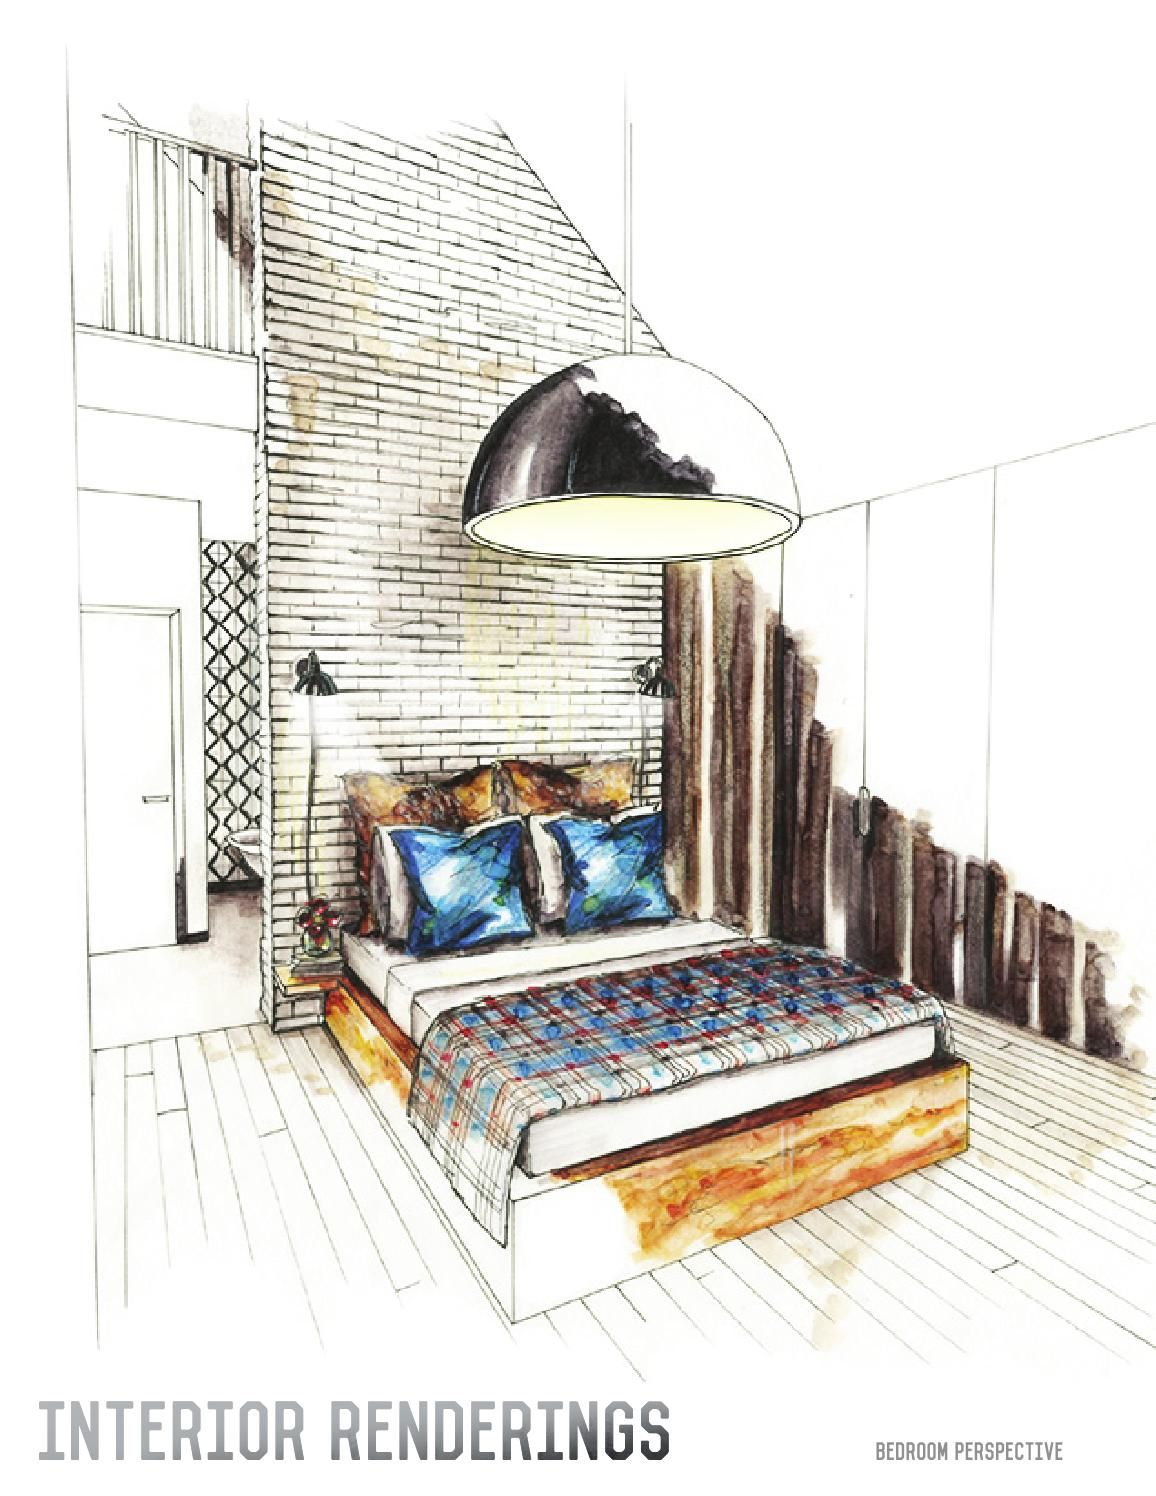 Single Point Perspective Worksheet